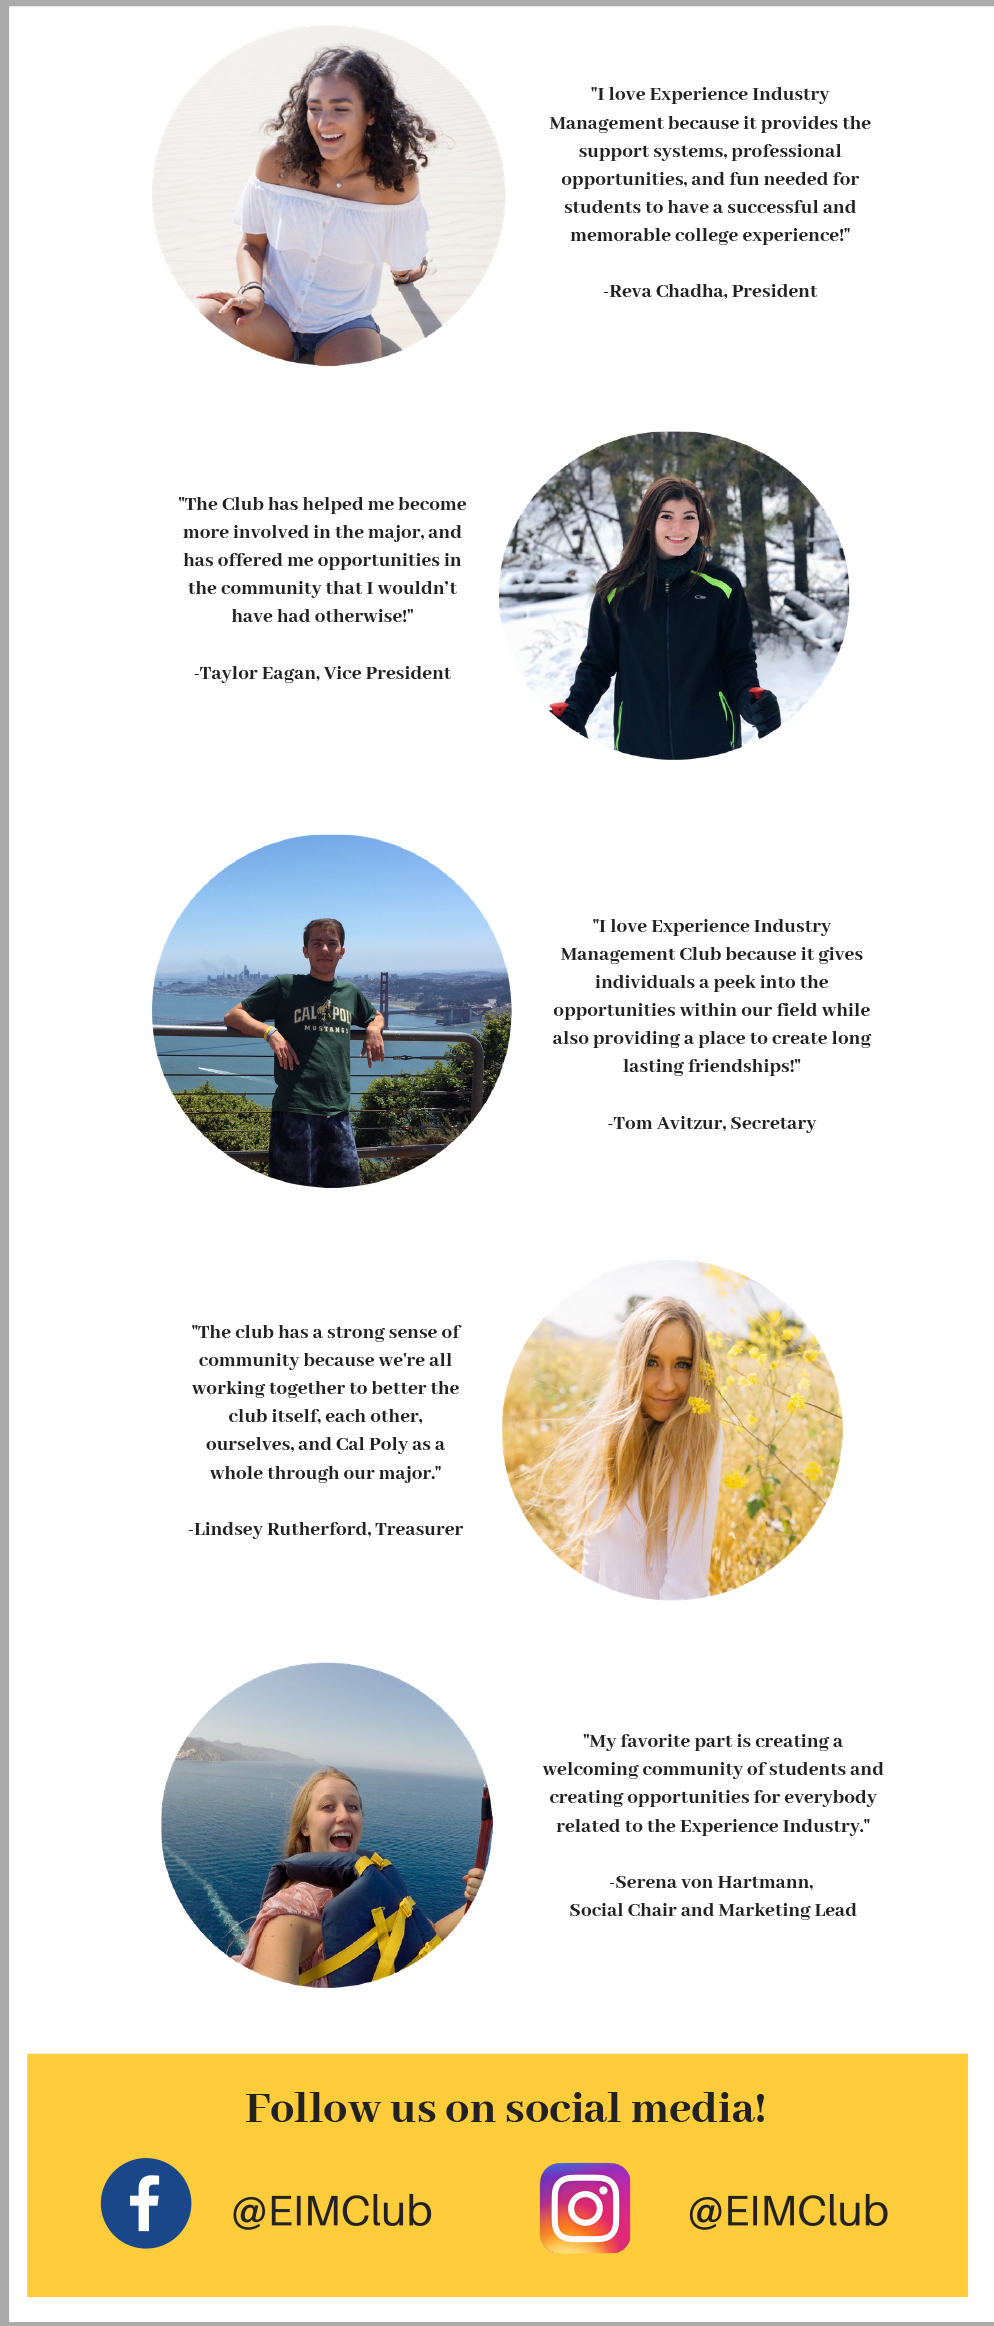 EIM Club Student Leaders photos and welcome comments